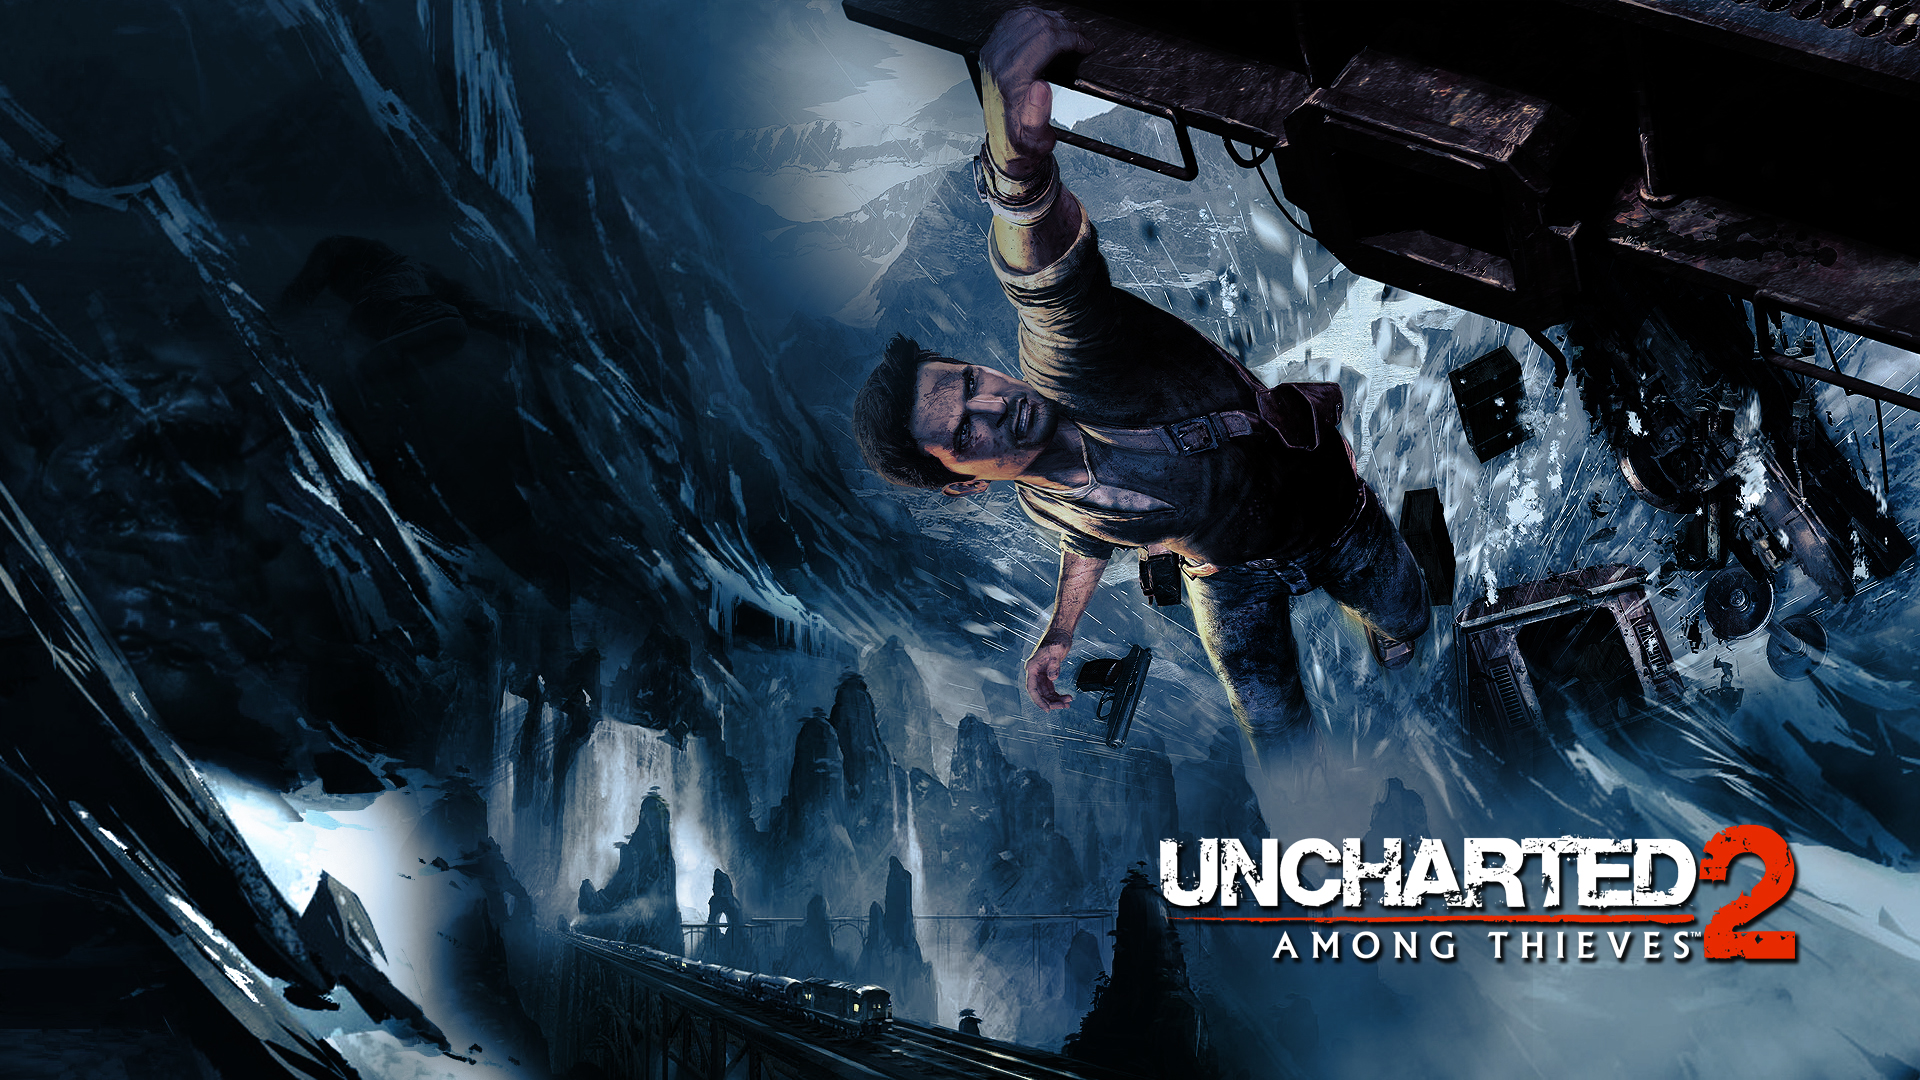 Uncharted 2 Among Thieves Wallpaper Full HD And